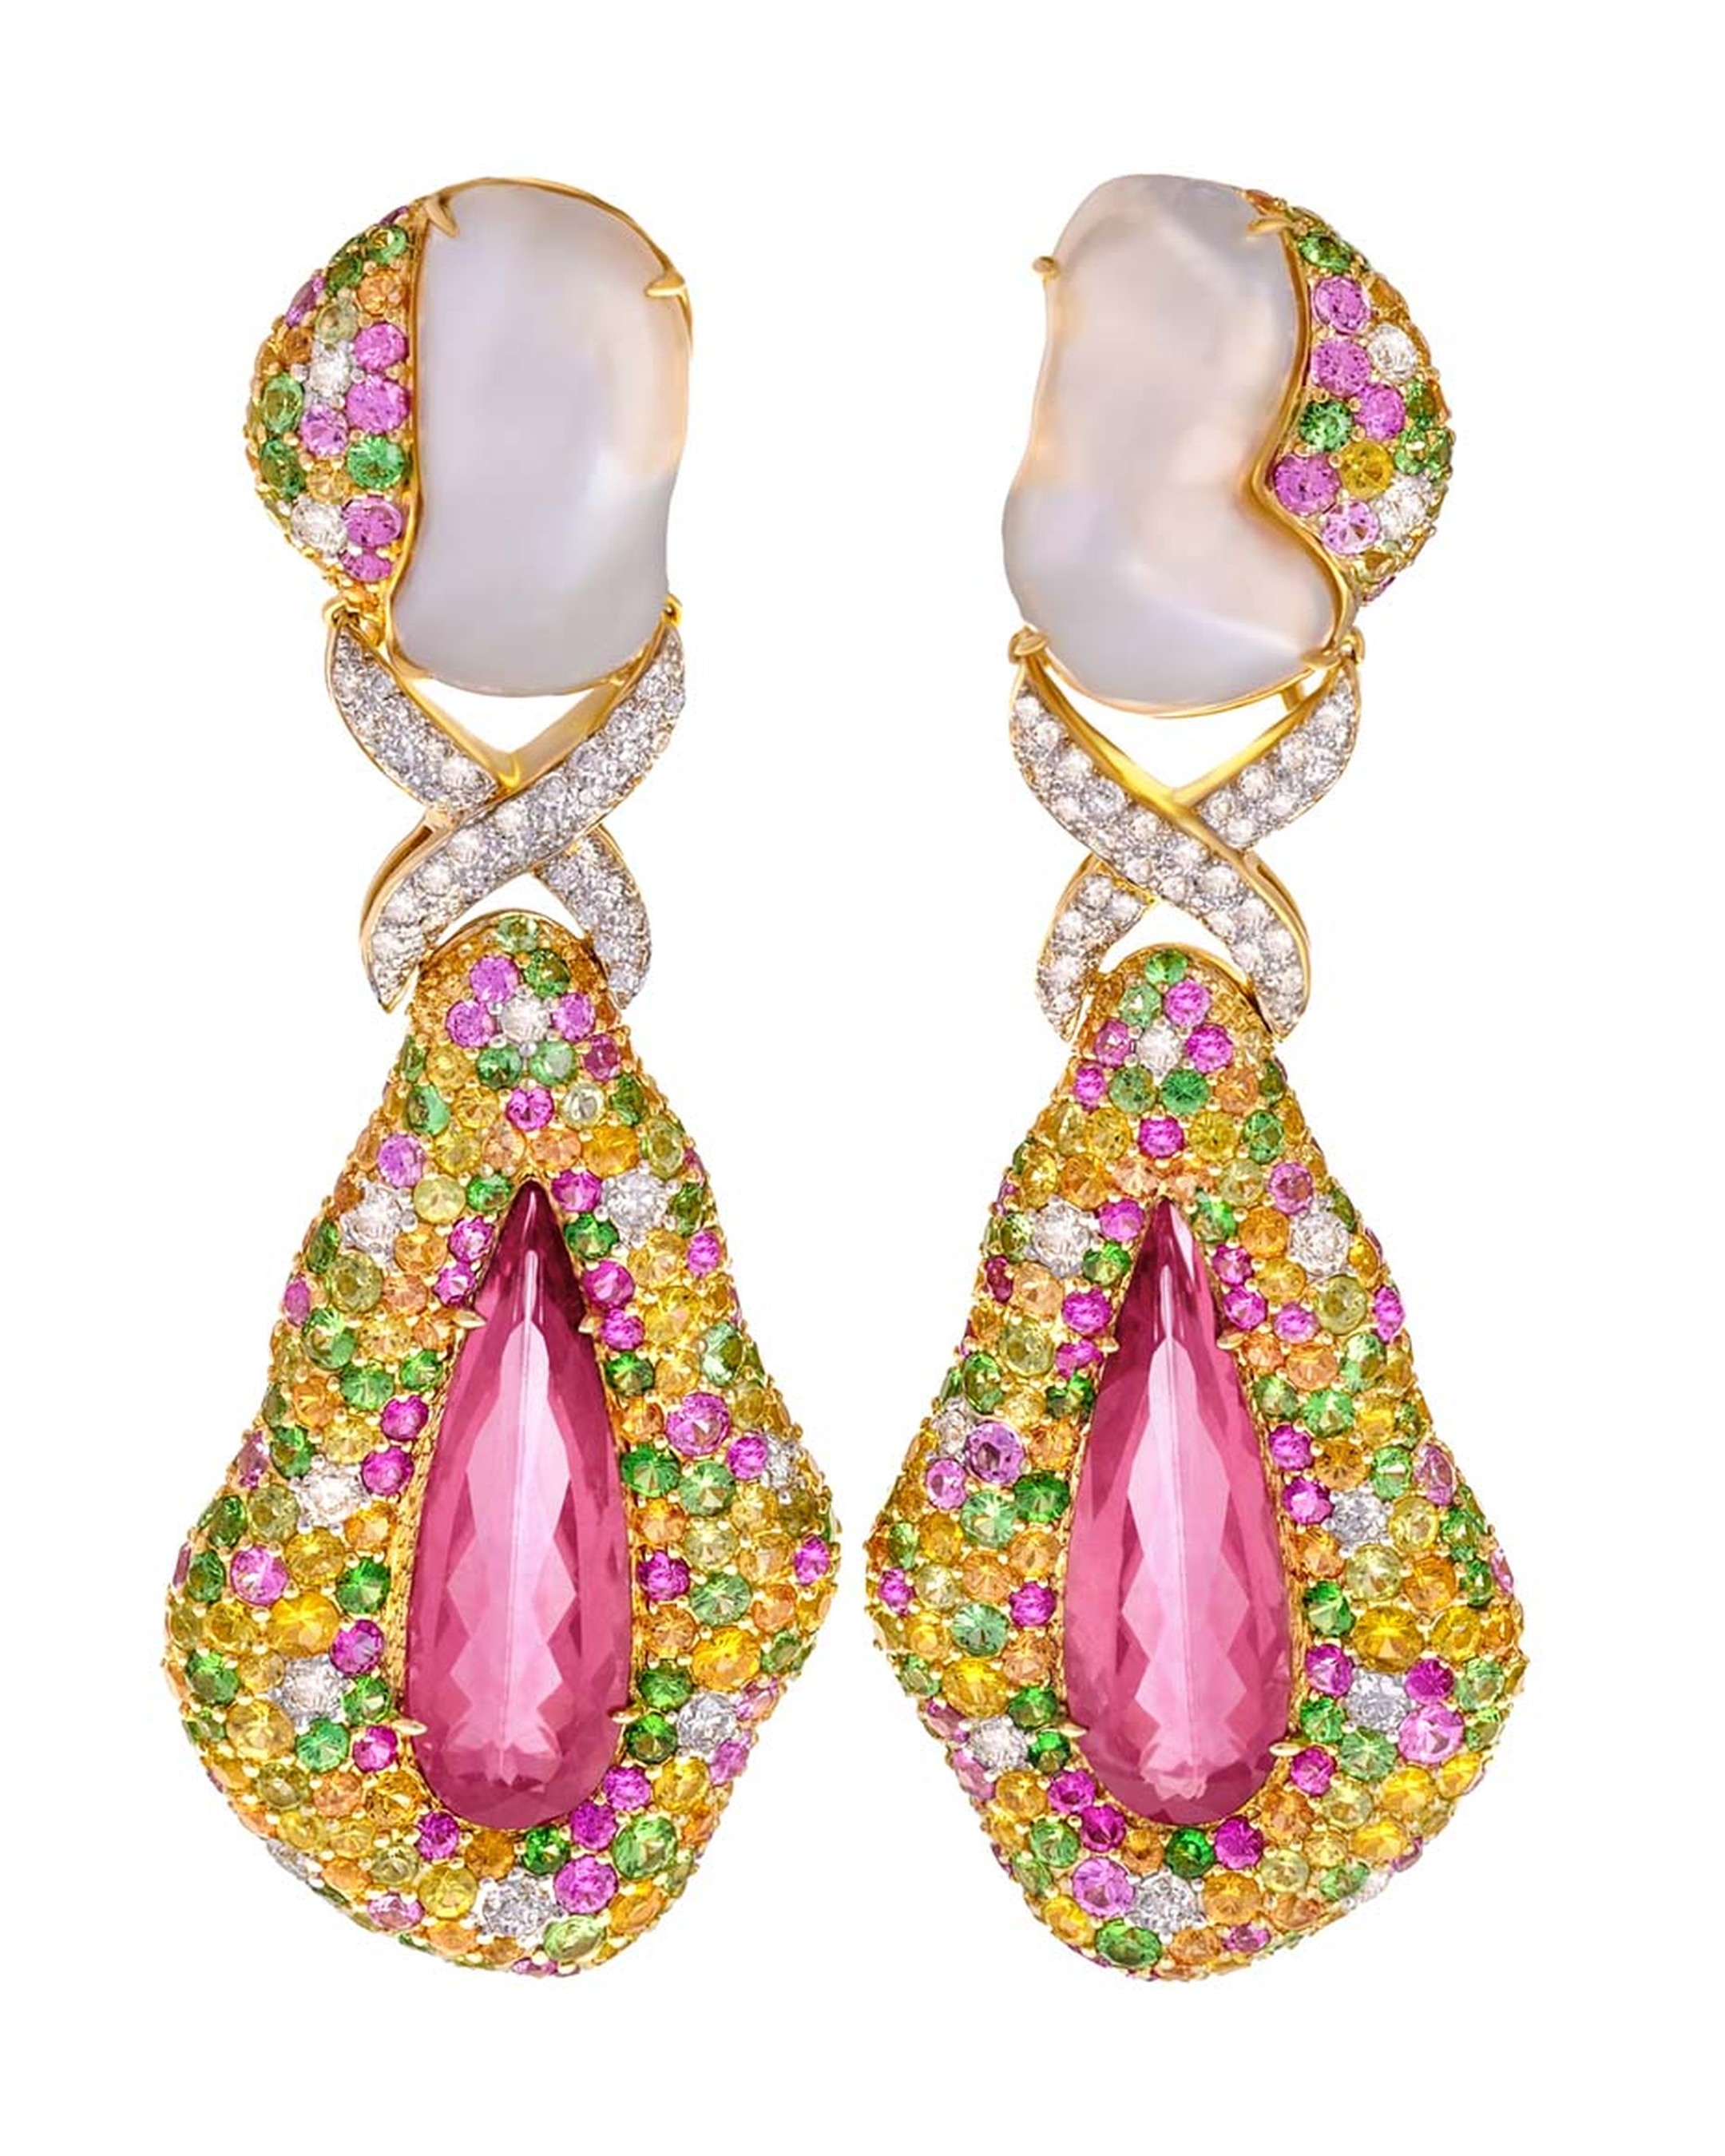 Margot McKinney rubellite drop earrings with Baroque South Sea pearls, sapphires and diamonds ($45,000).